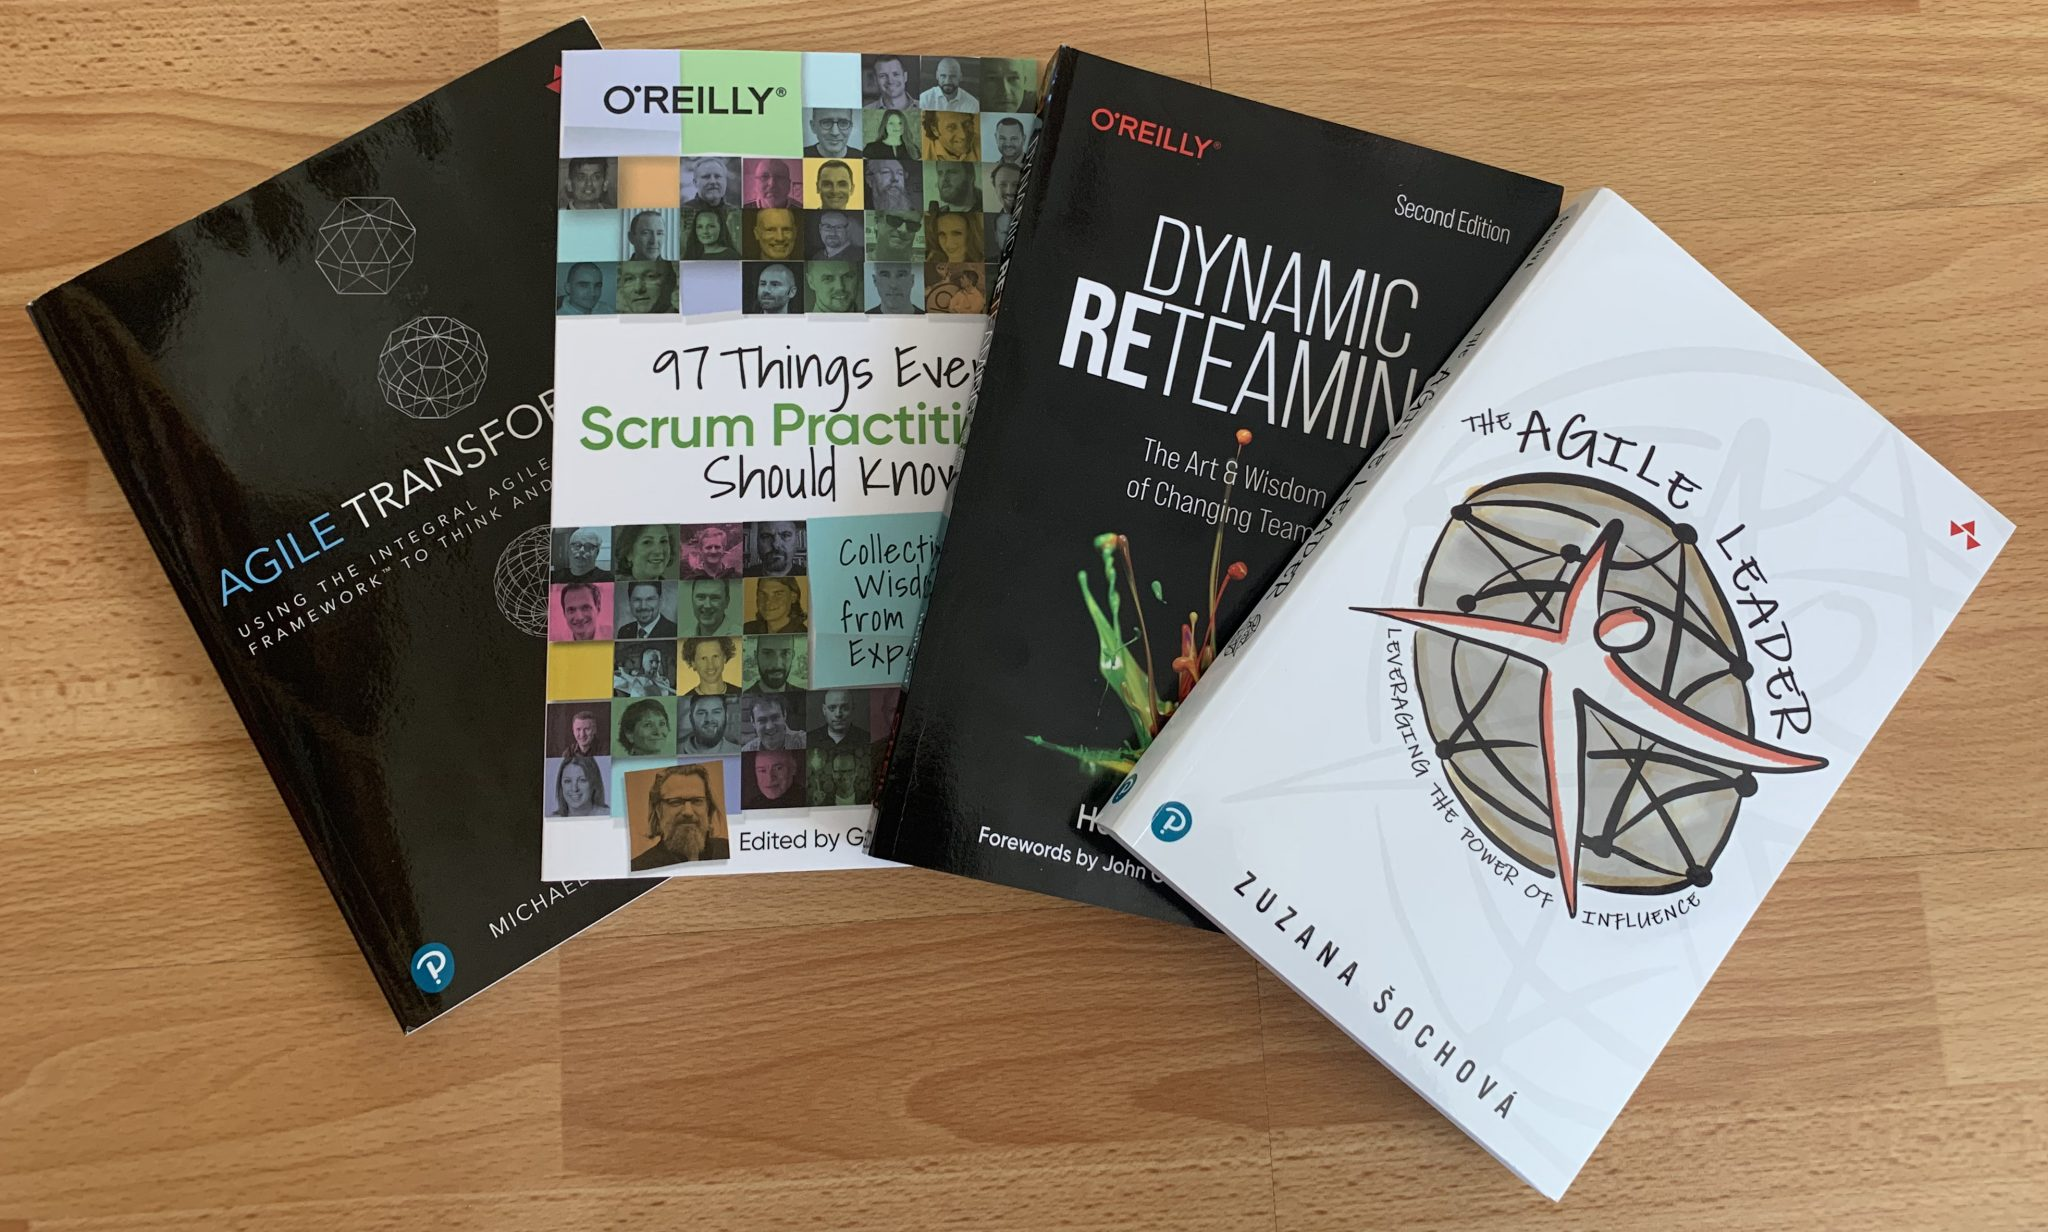 Top 5 Books You Have To Read Building Agile Organization